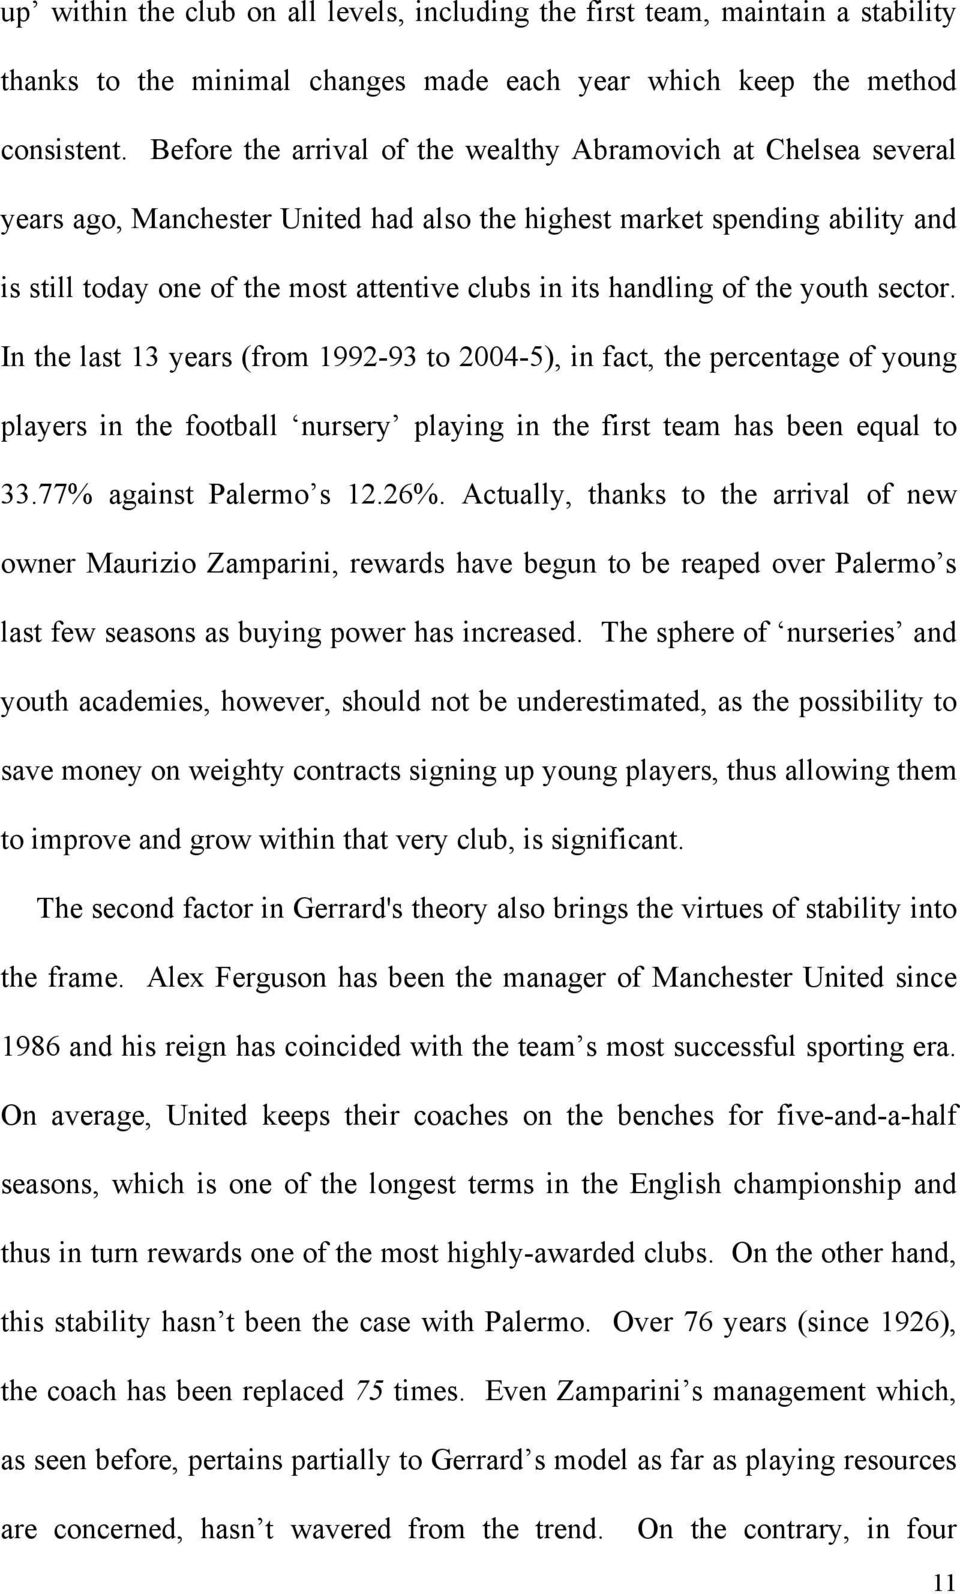 handling of the youth sector. In the last 13 years (from 1992-93 to 2004-5), in fact, the percentage of young players in the football nursery playing in the first team has been equal to 33.